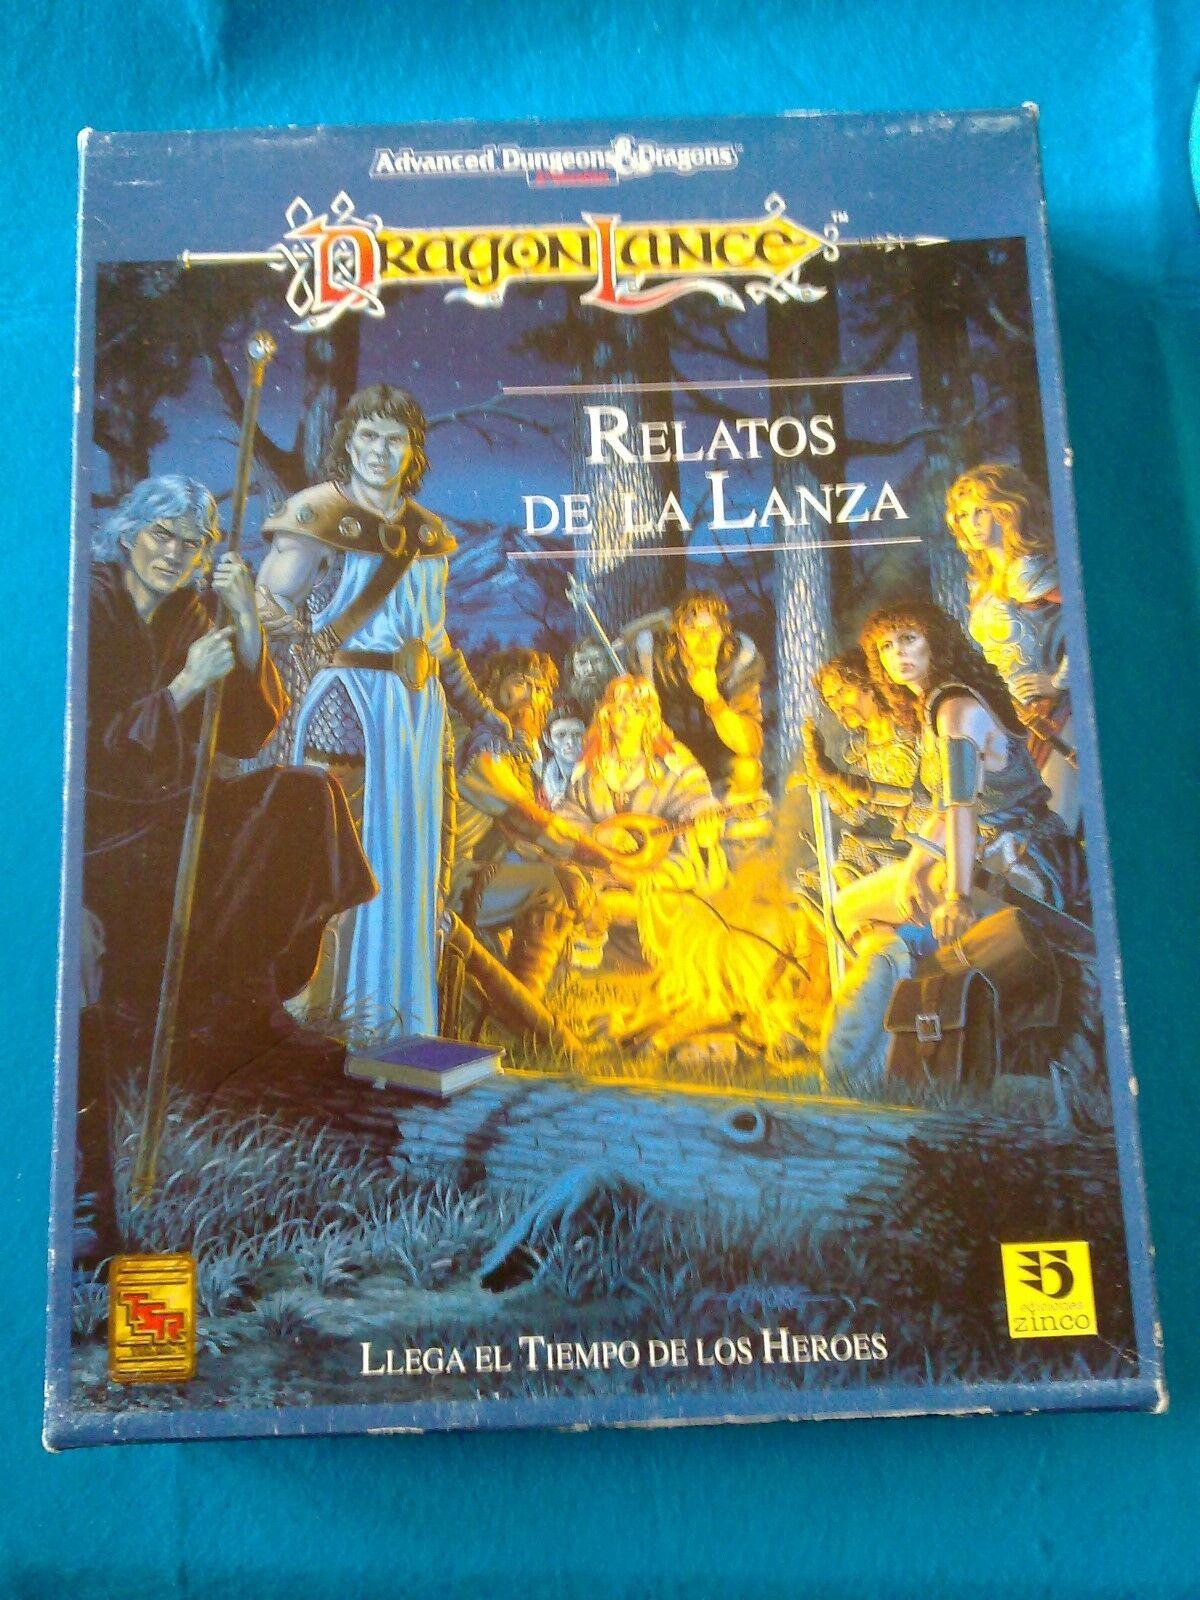 Rol AD&D 2ª - Dragonlance, Relatos de la lanza (caja) - RL513